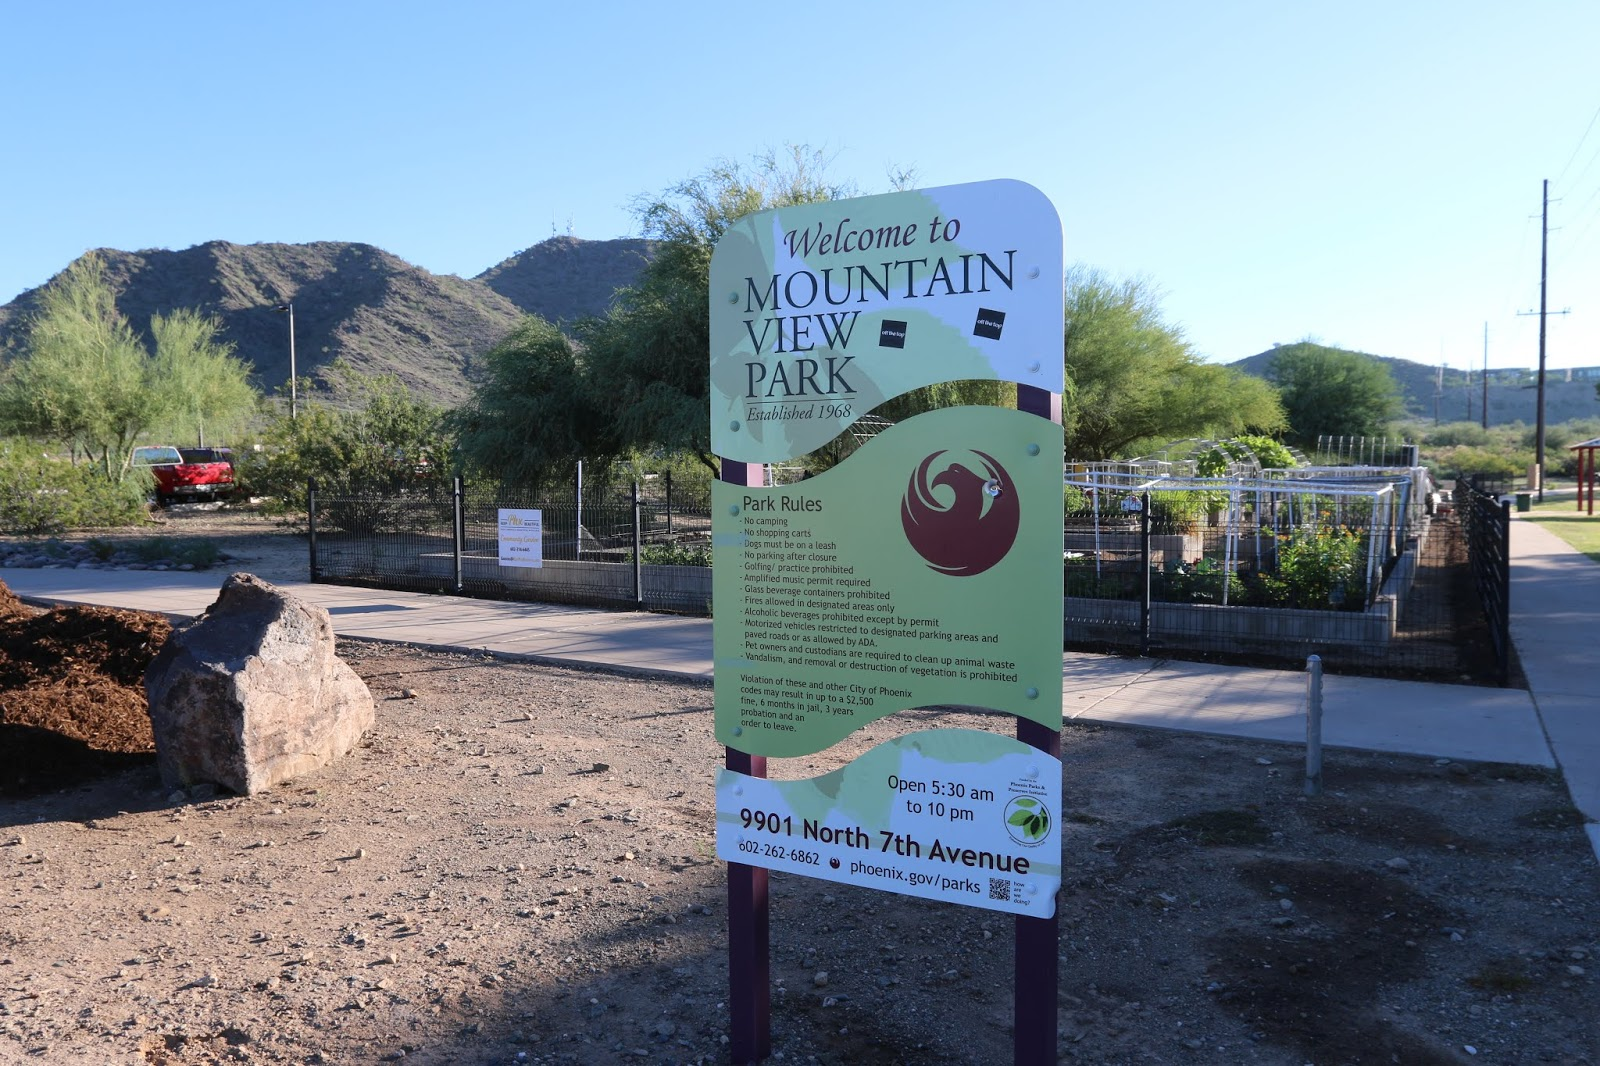 gjhikes.com: Trail 100 on echo canyon trail map, springs trail map, squaw peak hiking trail map, red mountain trail map, agua fria river trail map, piestewa peak trail map, bell rock pathway trail map, san marcos trail map, lost dog wash trail map, granite mountain trail map, san tan trail map, phoenix mountains preserve trail map, salt river trail map, bartlett lake trail map, saddle mountain trail map, mcdowell mountain regional park trail map, highland trail map, mcdowell sonoran preserve trail map, north mountain trail map, cloud peak trail map,